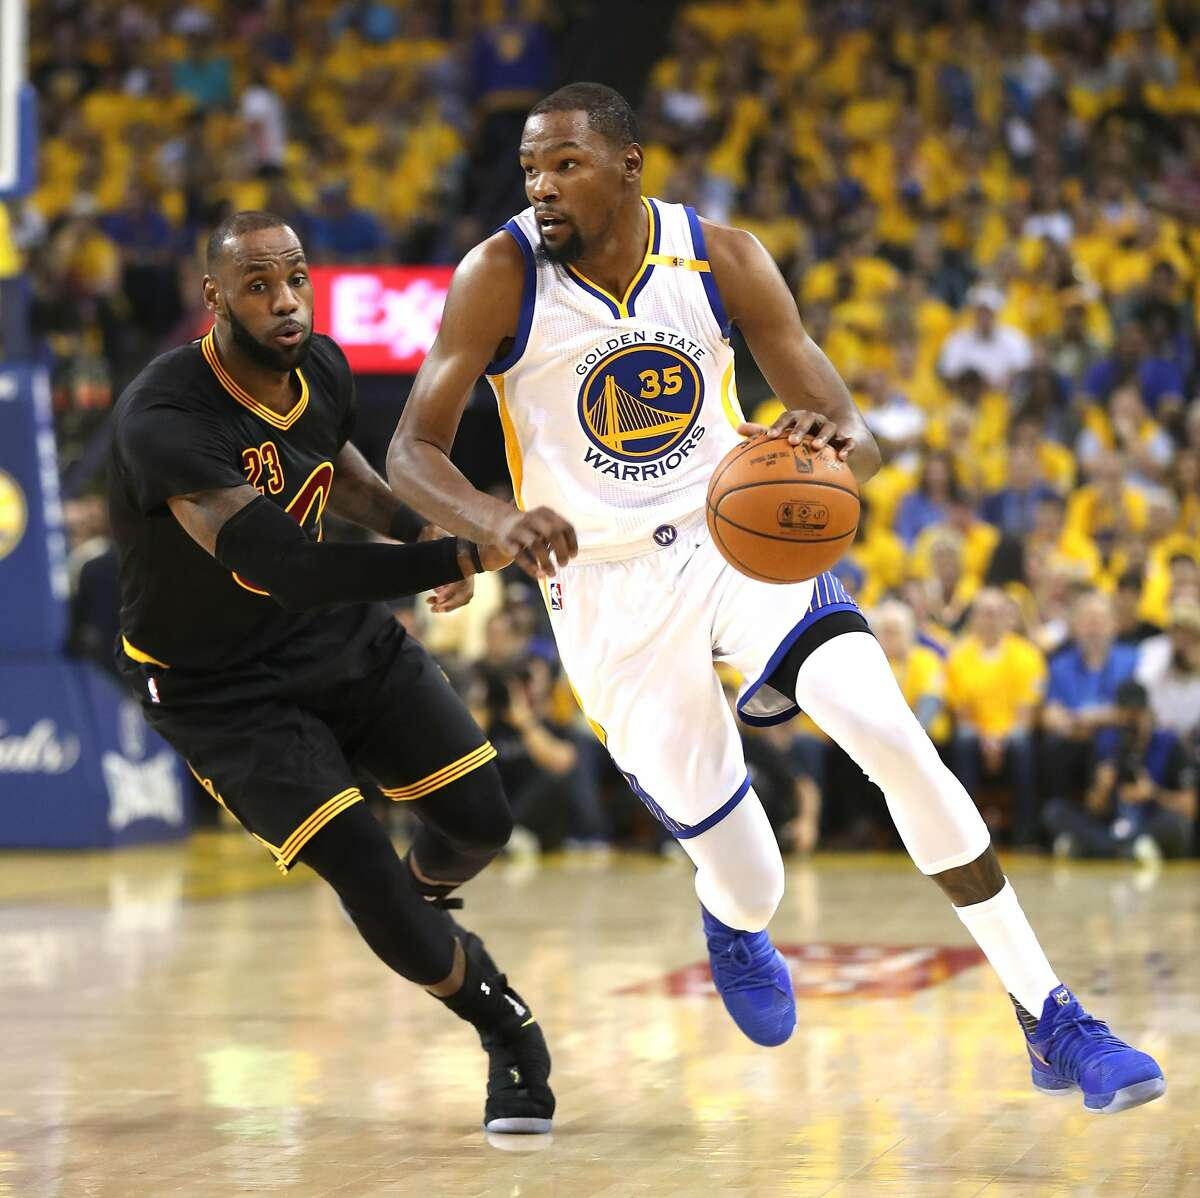 Golden State Warriors' Kevin Durant and Cleveland Cavaliers' LeBron James in 1st quarter of Game 2 of NBA Finals at Oracle Arena in Oakland, Calif., on Sunday, June 4, 2017.